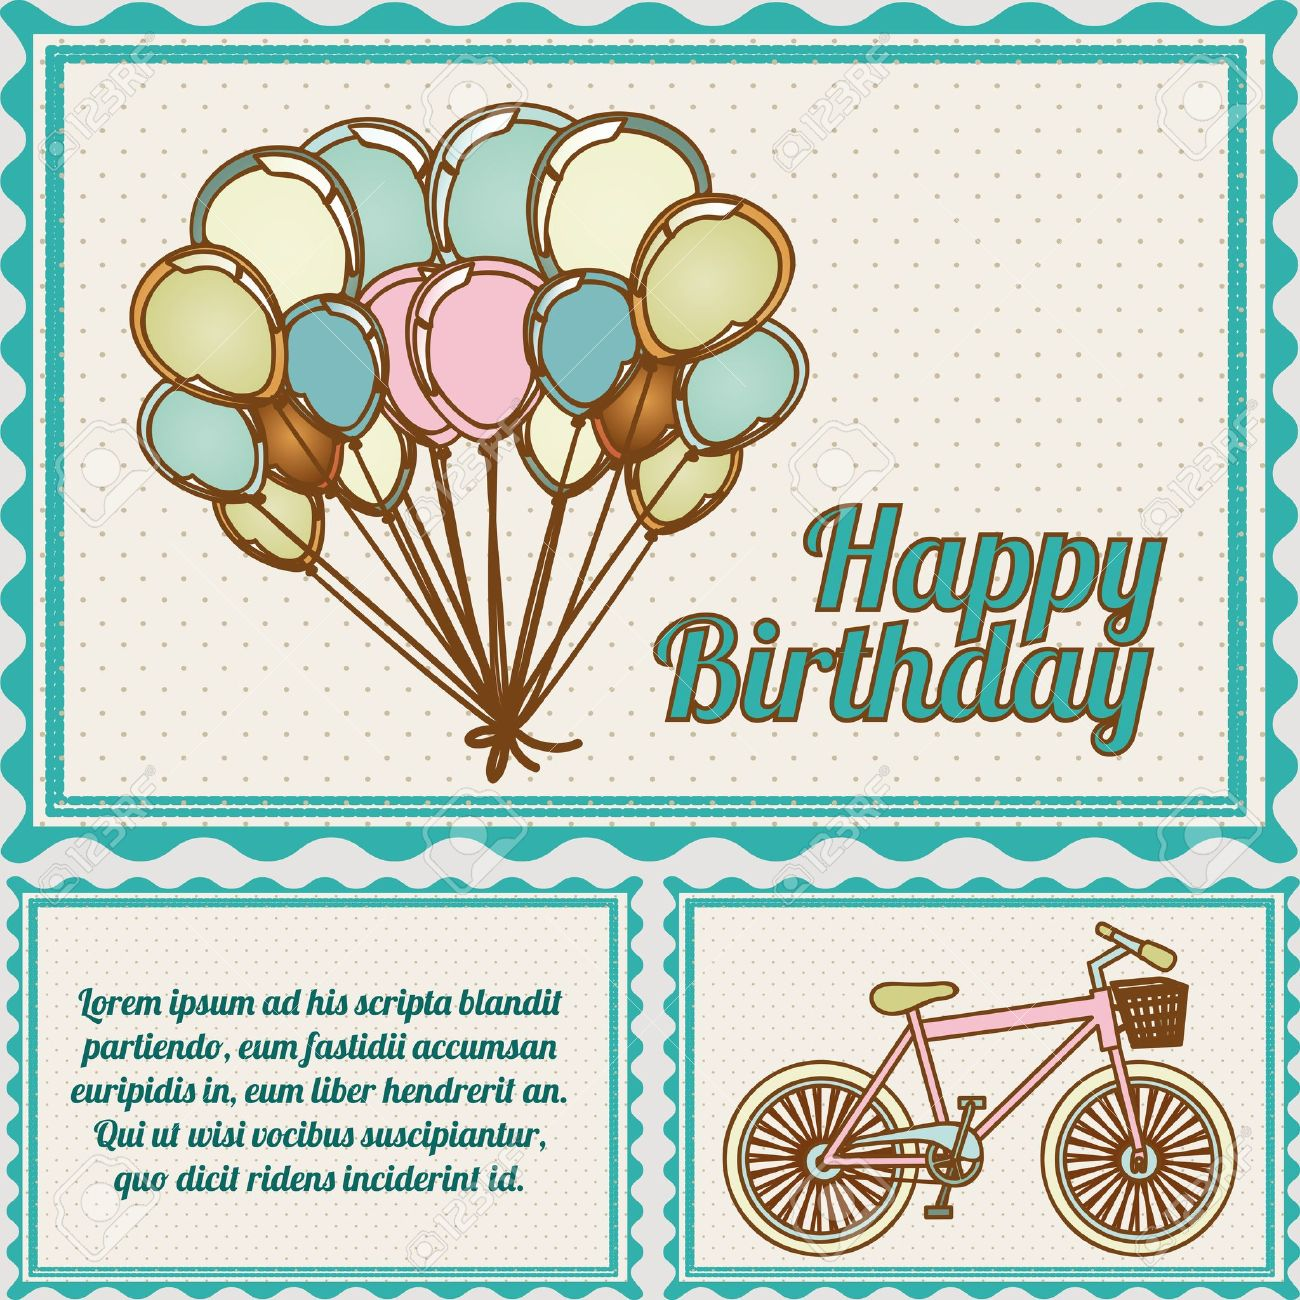 Happy birthday postcard over dotted background illustration happy birthday postcard over dotted background illustration stock vector 19918373 bookmarktalkfo Image collections